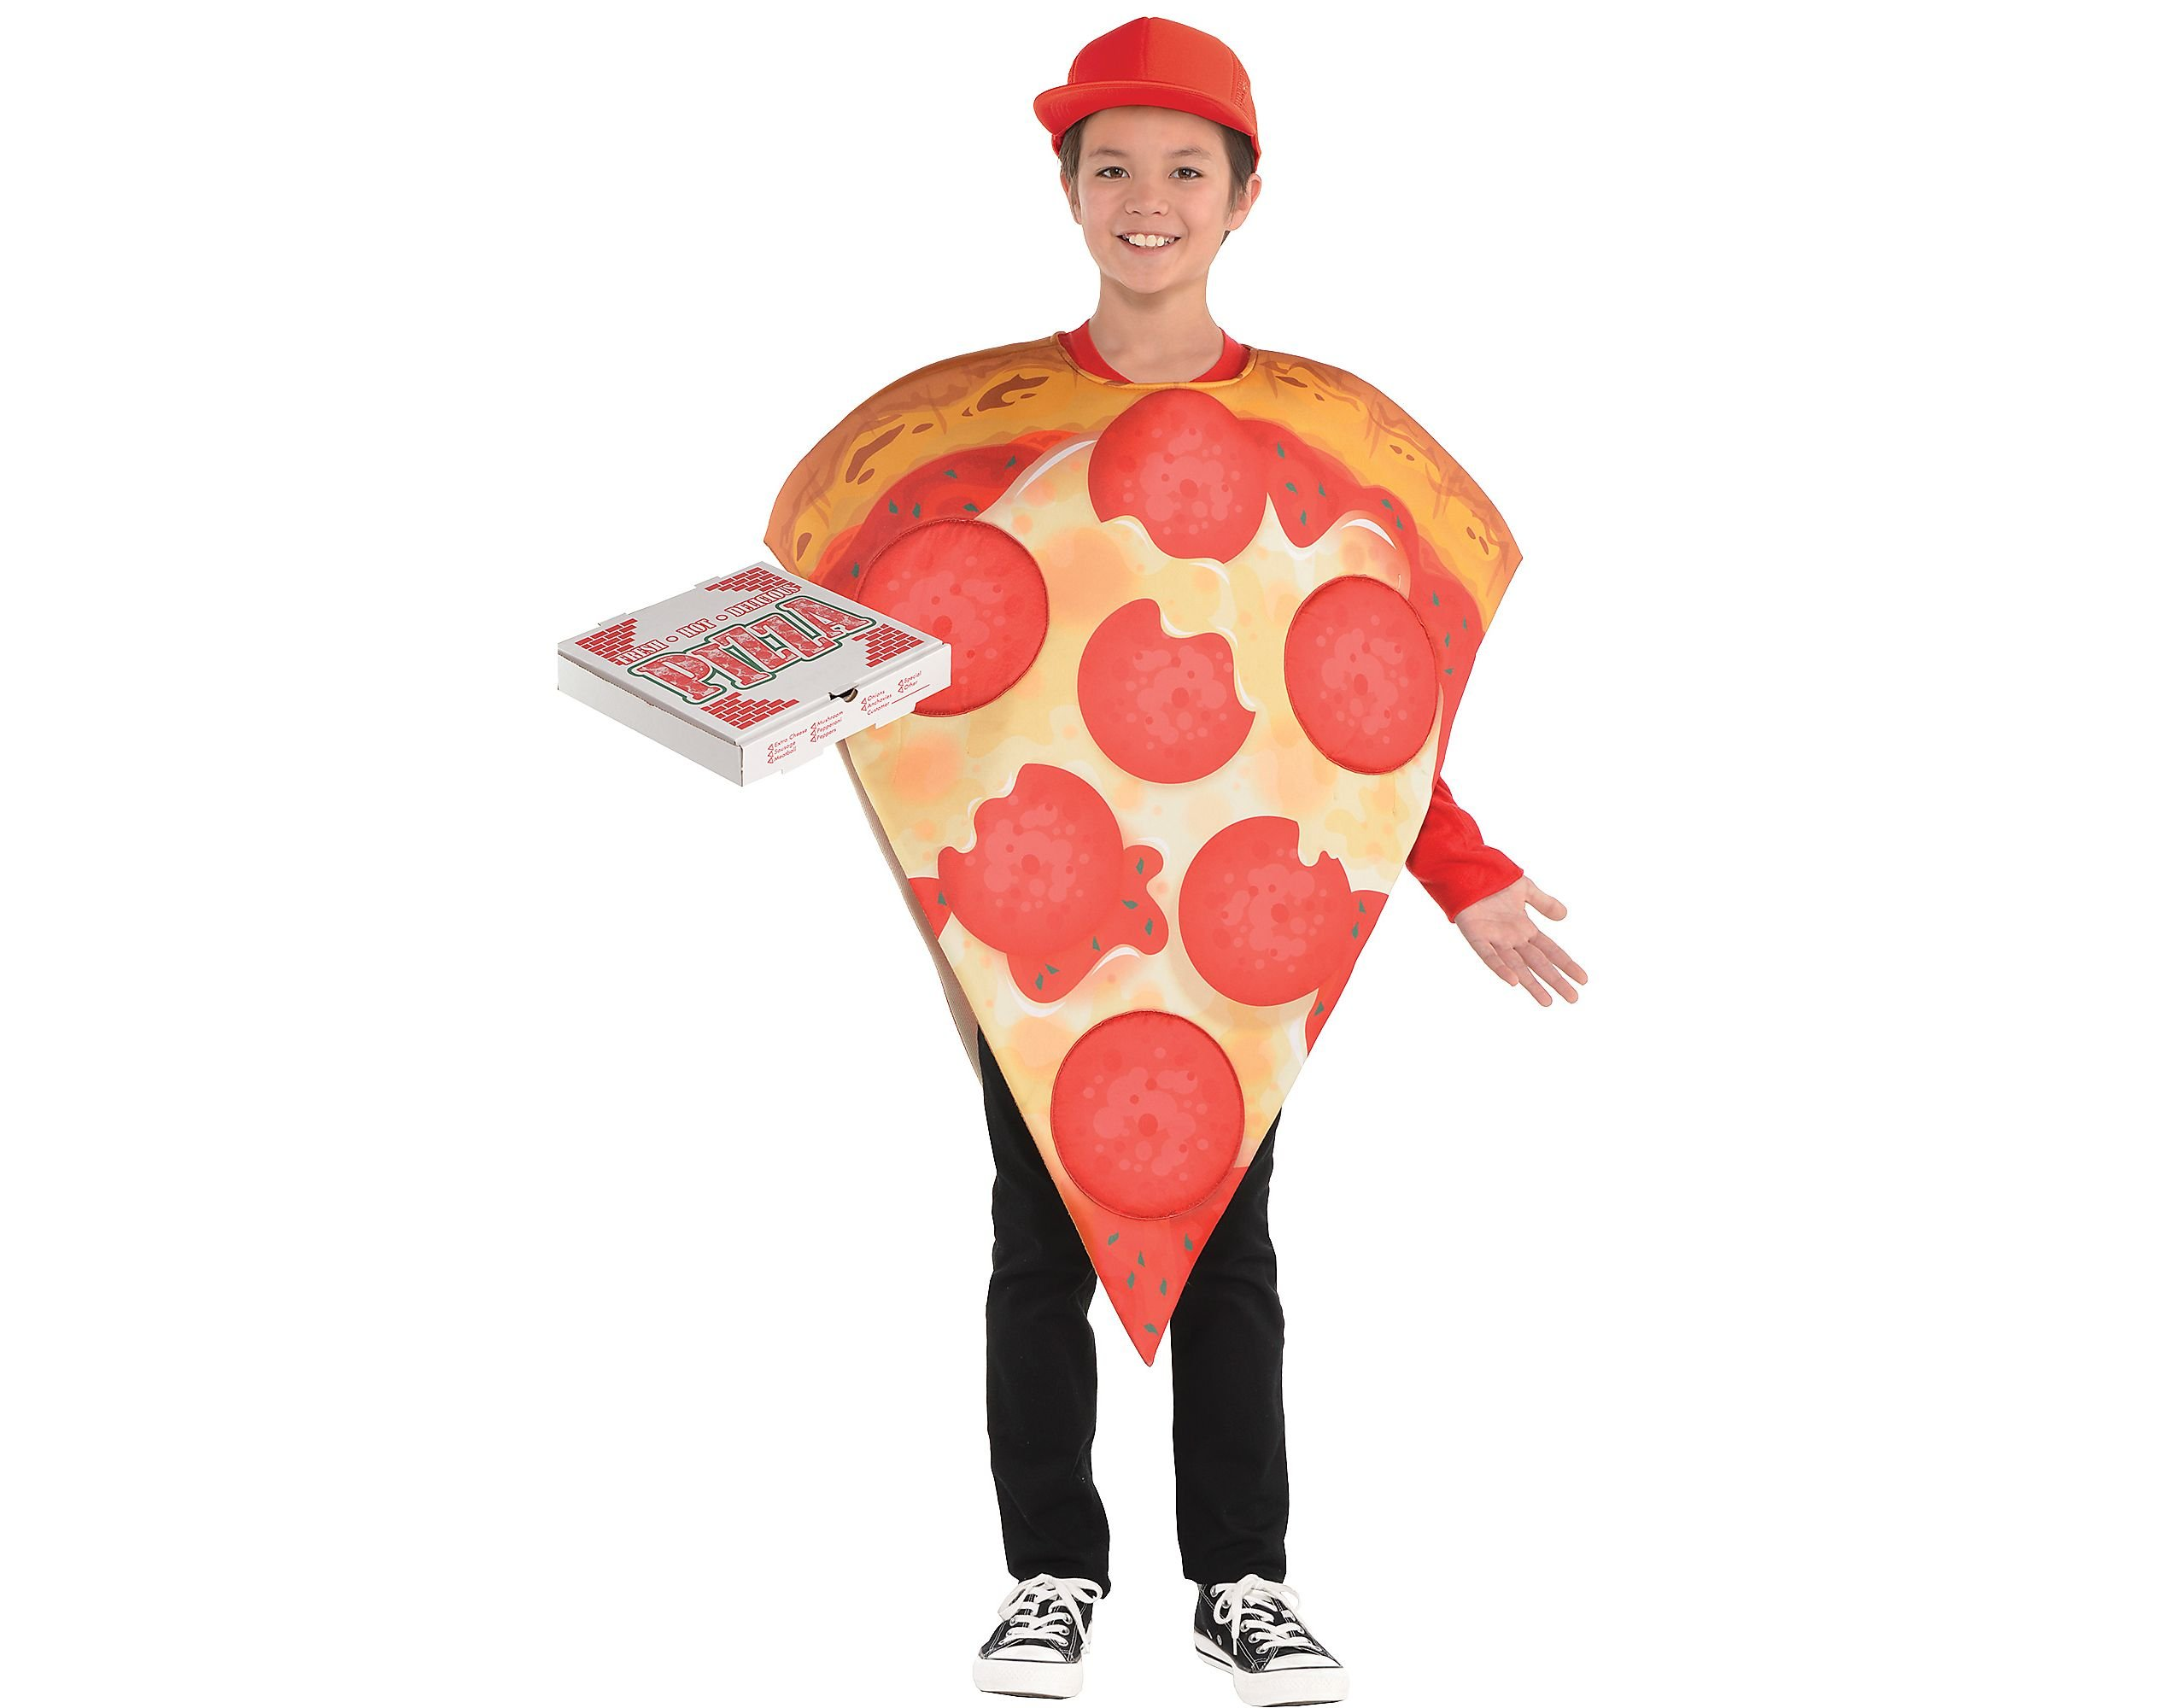 AMSCAN Pizza Halloween Costume for Kids, Standard, with Included Accessories